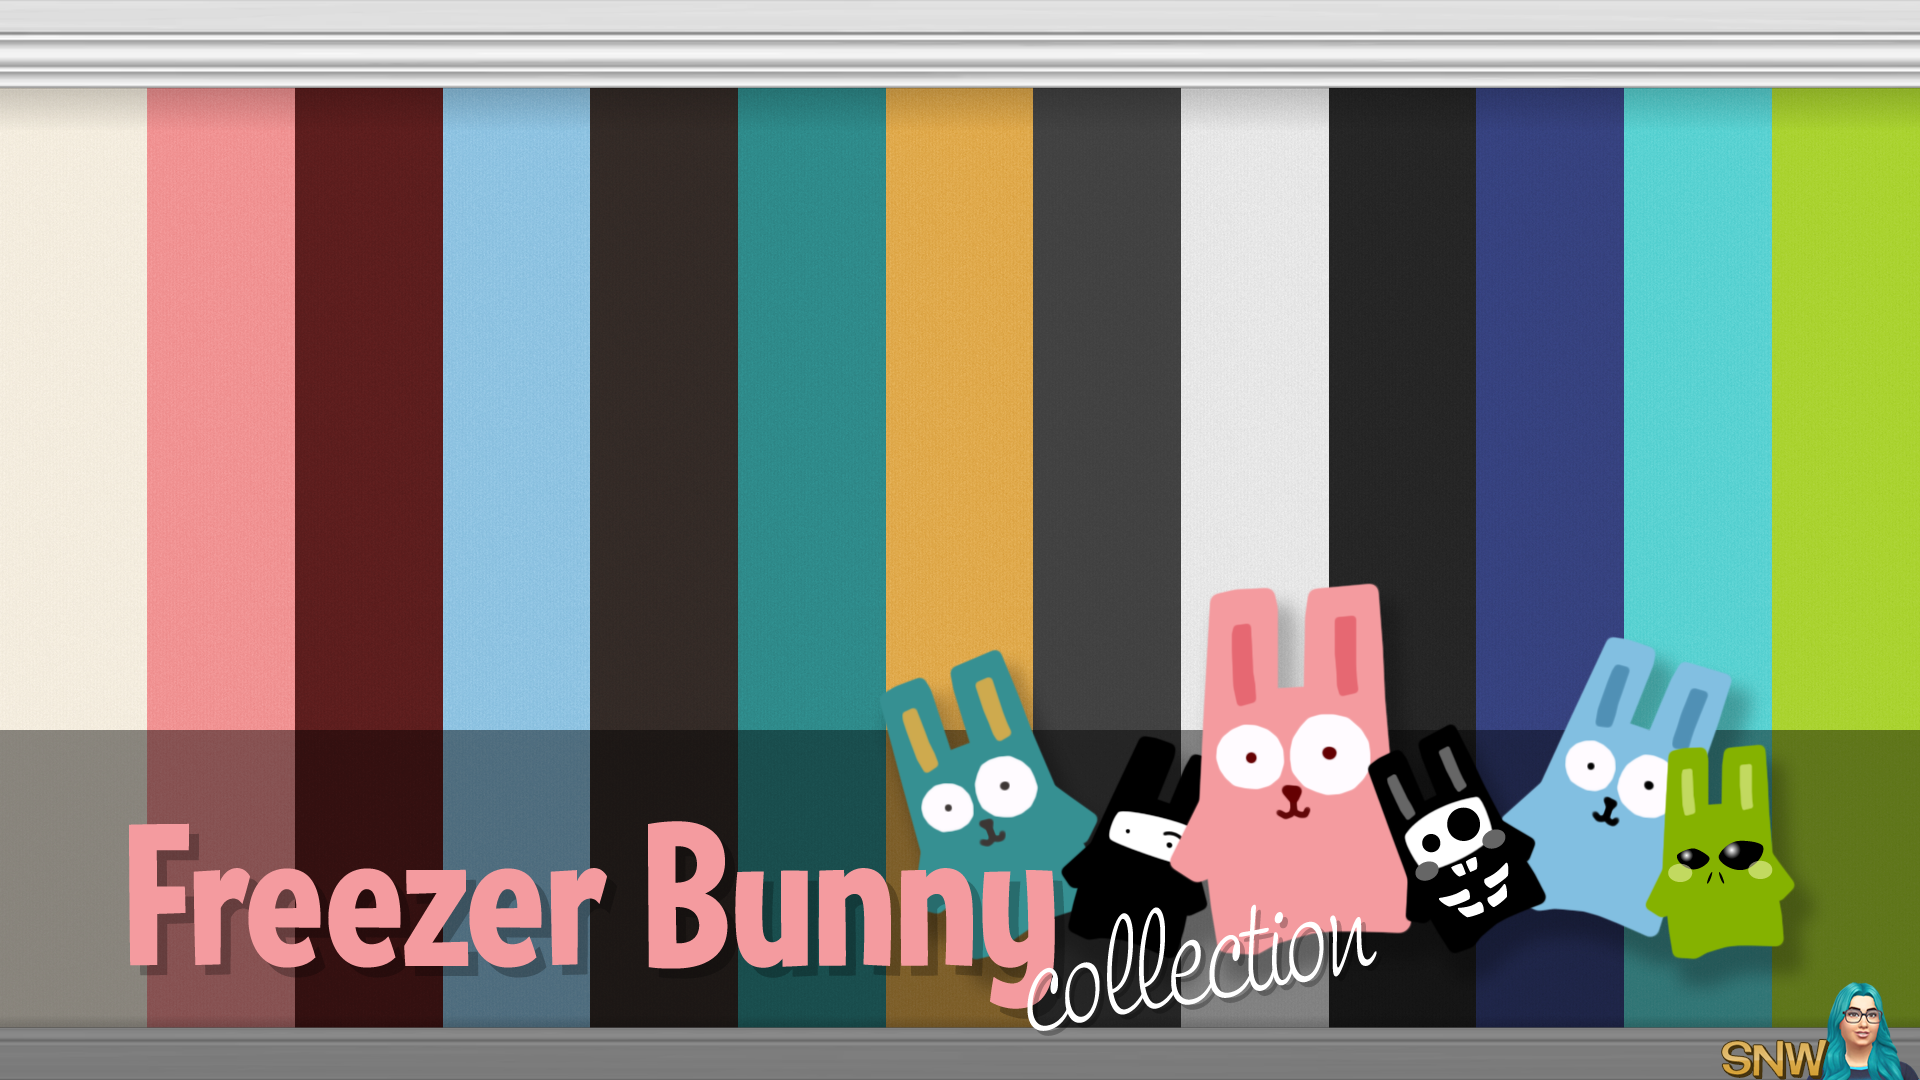 Freezer bunny collection plain wallpapers snw for Wallpaper for walls websites